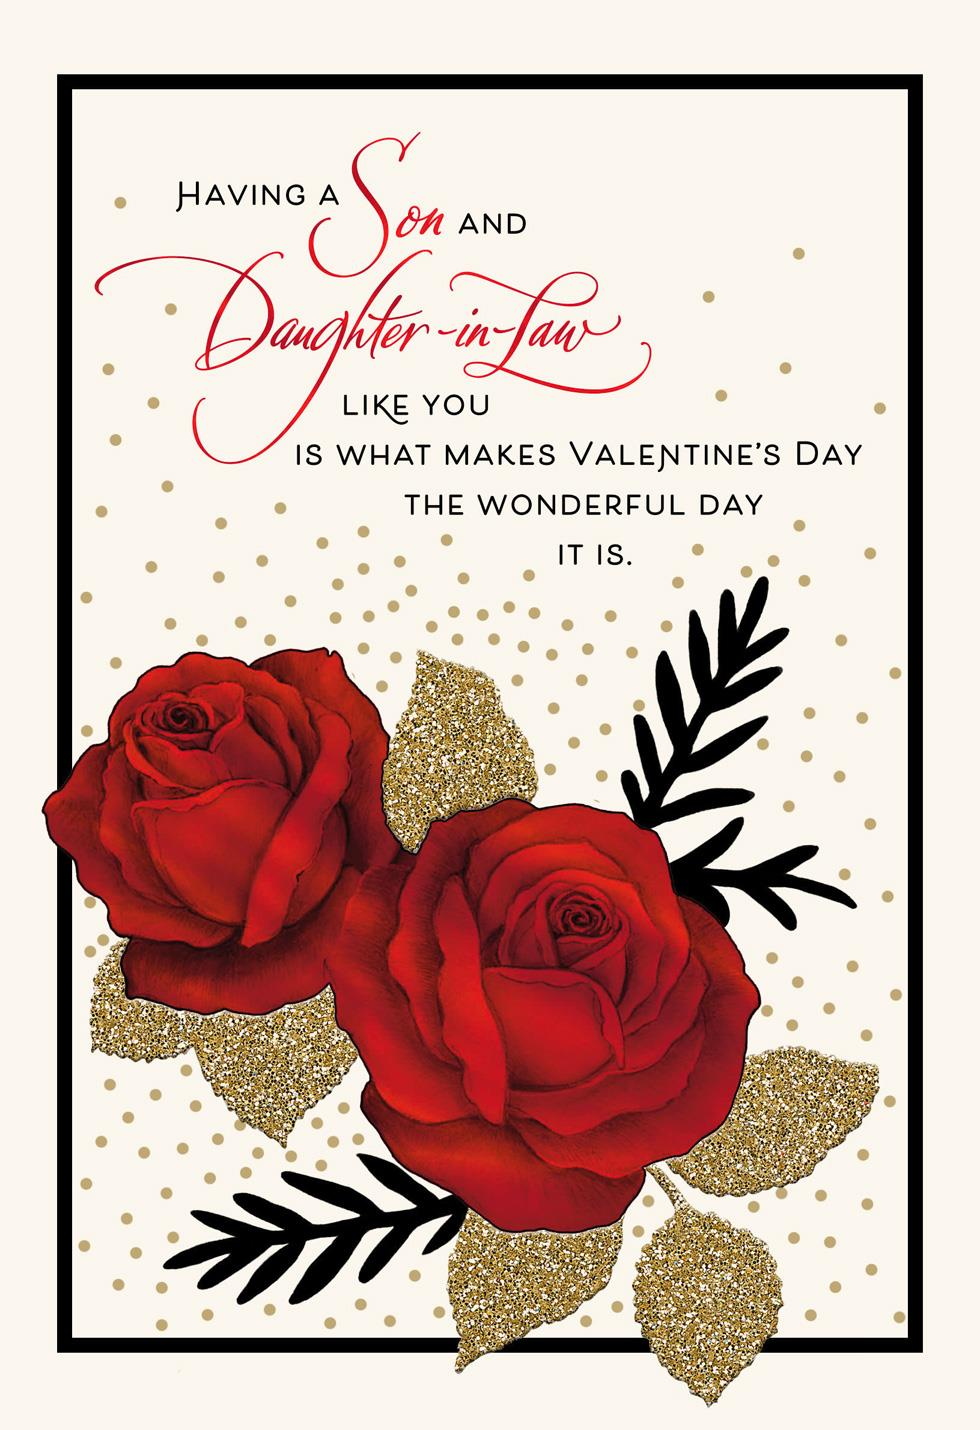 Pride and gratitude valentines day card for son and daughter in law pride and gratitude valentines day card for son and daughter in law m4hsunfo